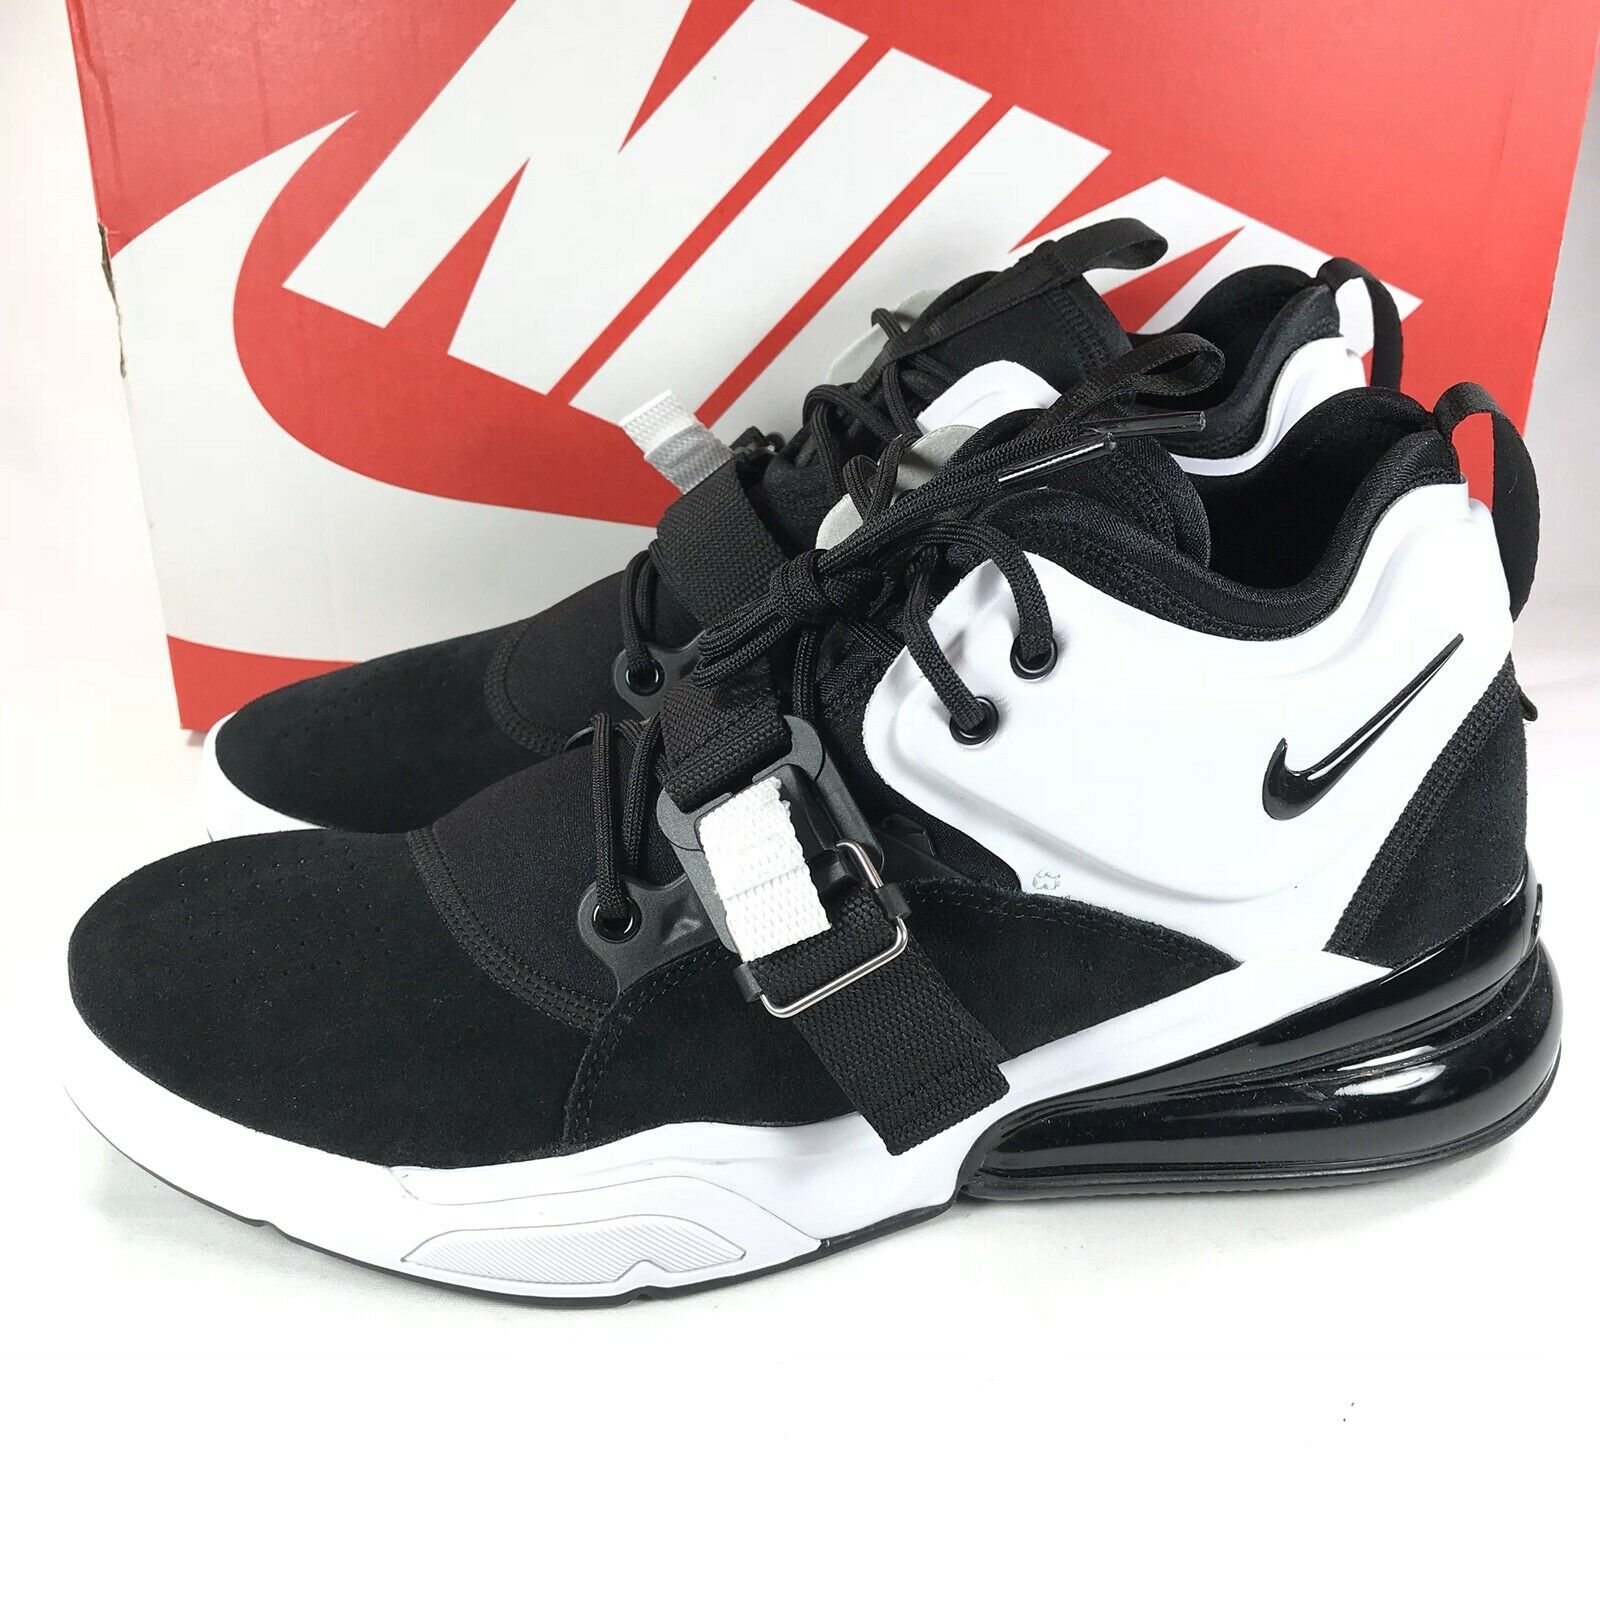 Nike Air Force Max 270 Black White Men's Size 11 New In Box AH6772 006